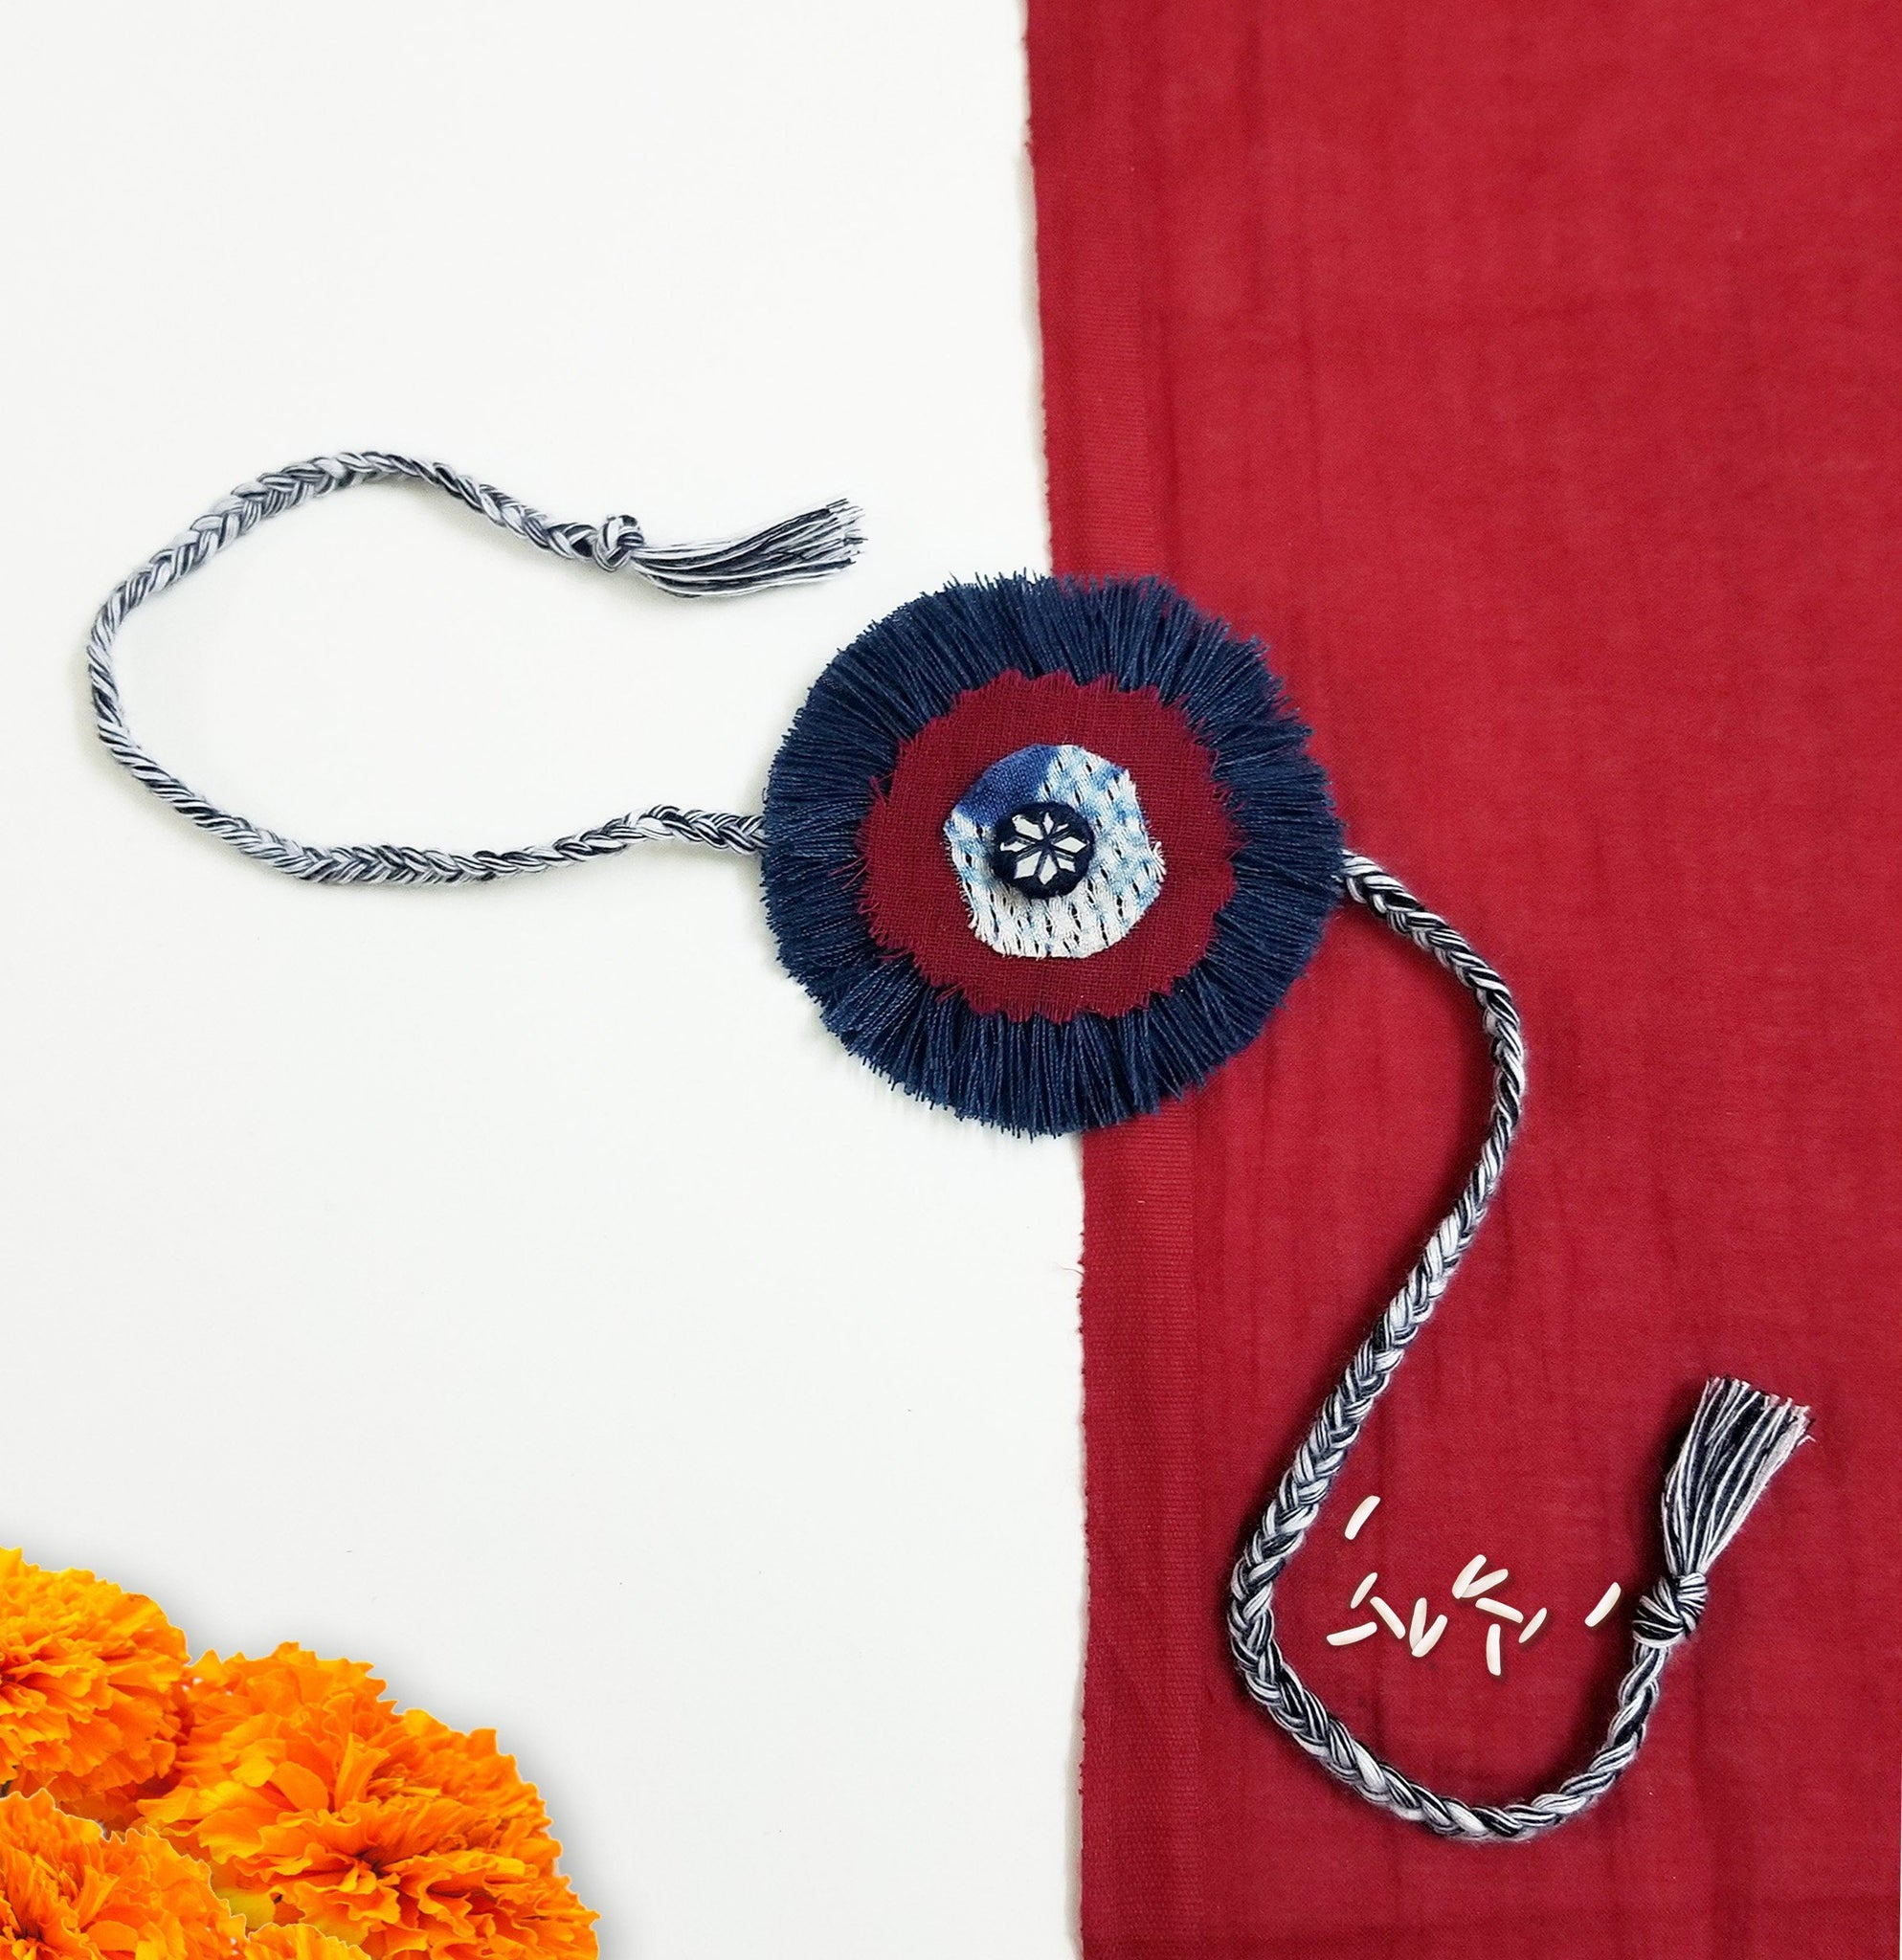 Indigo Mirror Work Rakhi Rakhi The Neem Tree Sonal Kabra Buy Shop online premium luxury fashion clothing natural fabrics sustainable organic hand made handcrafted artisans craftsmen